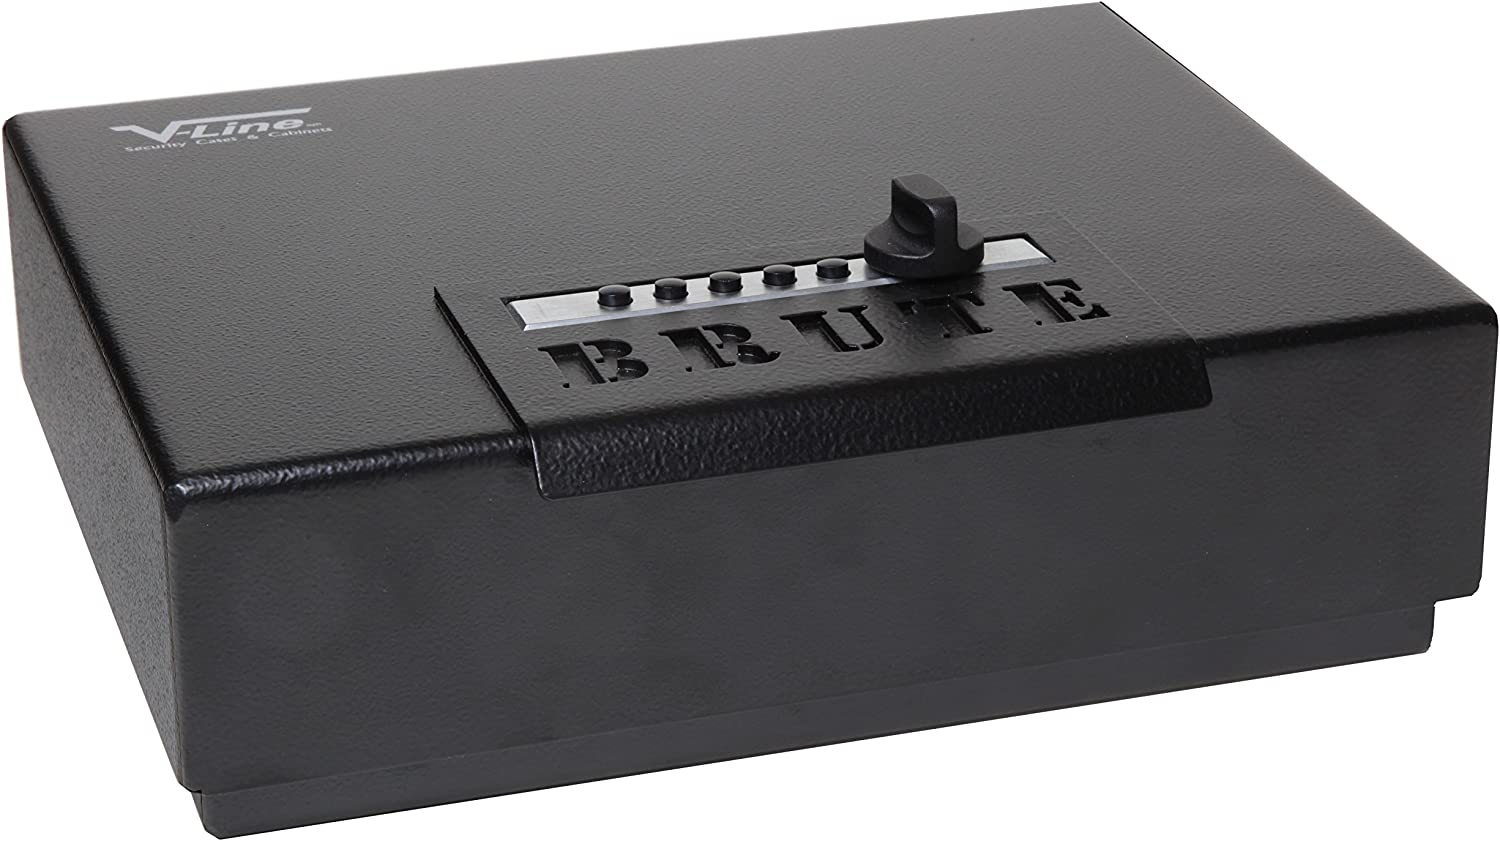 V-Line Brute Heavy Duty Safe with Quick Access Lock, Black